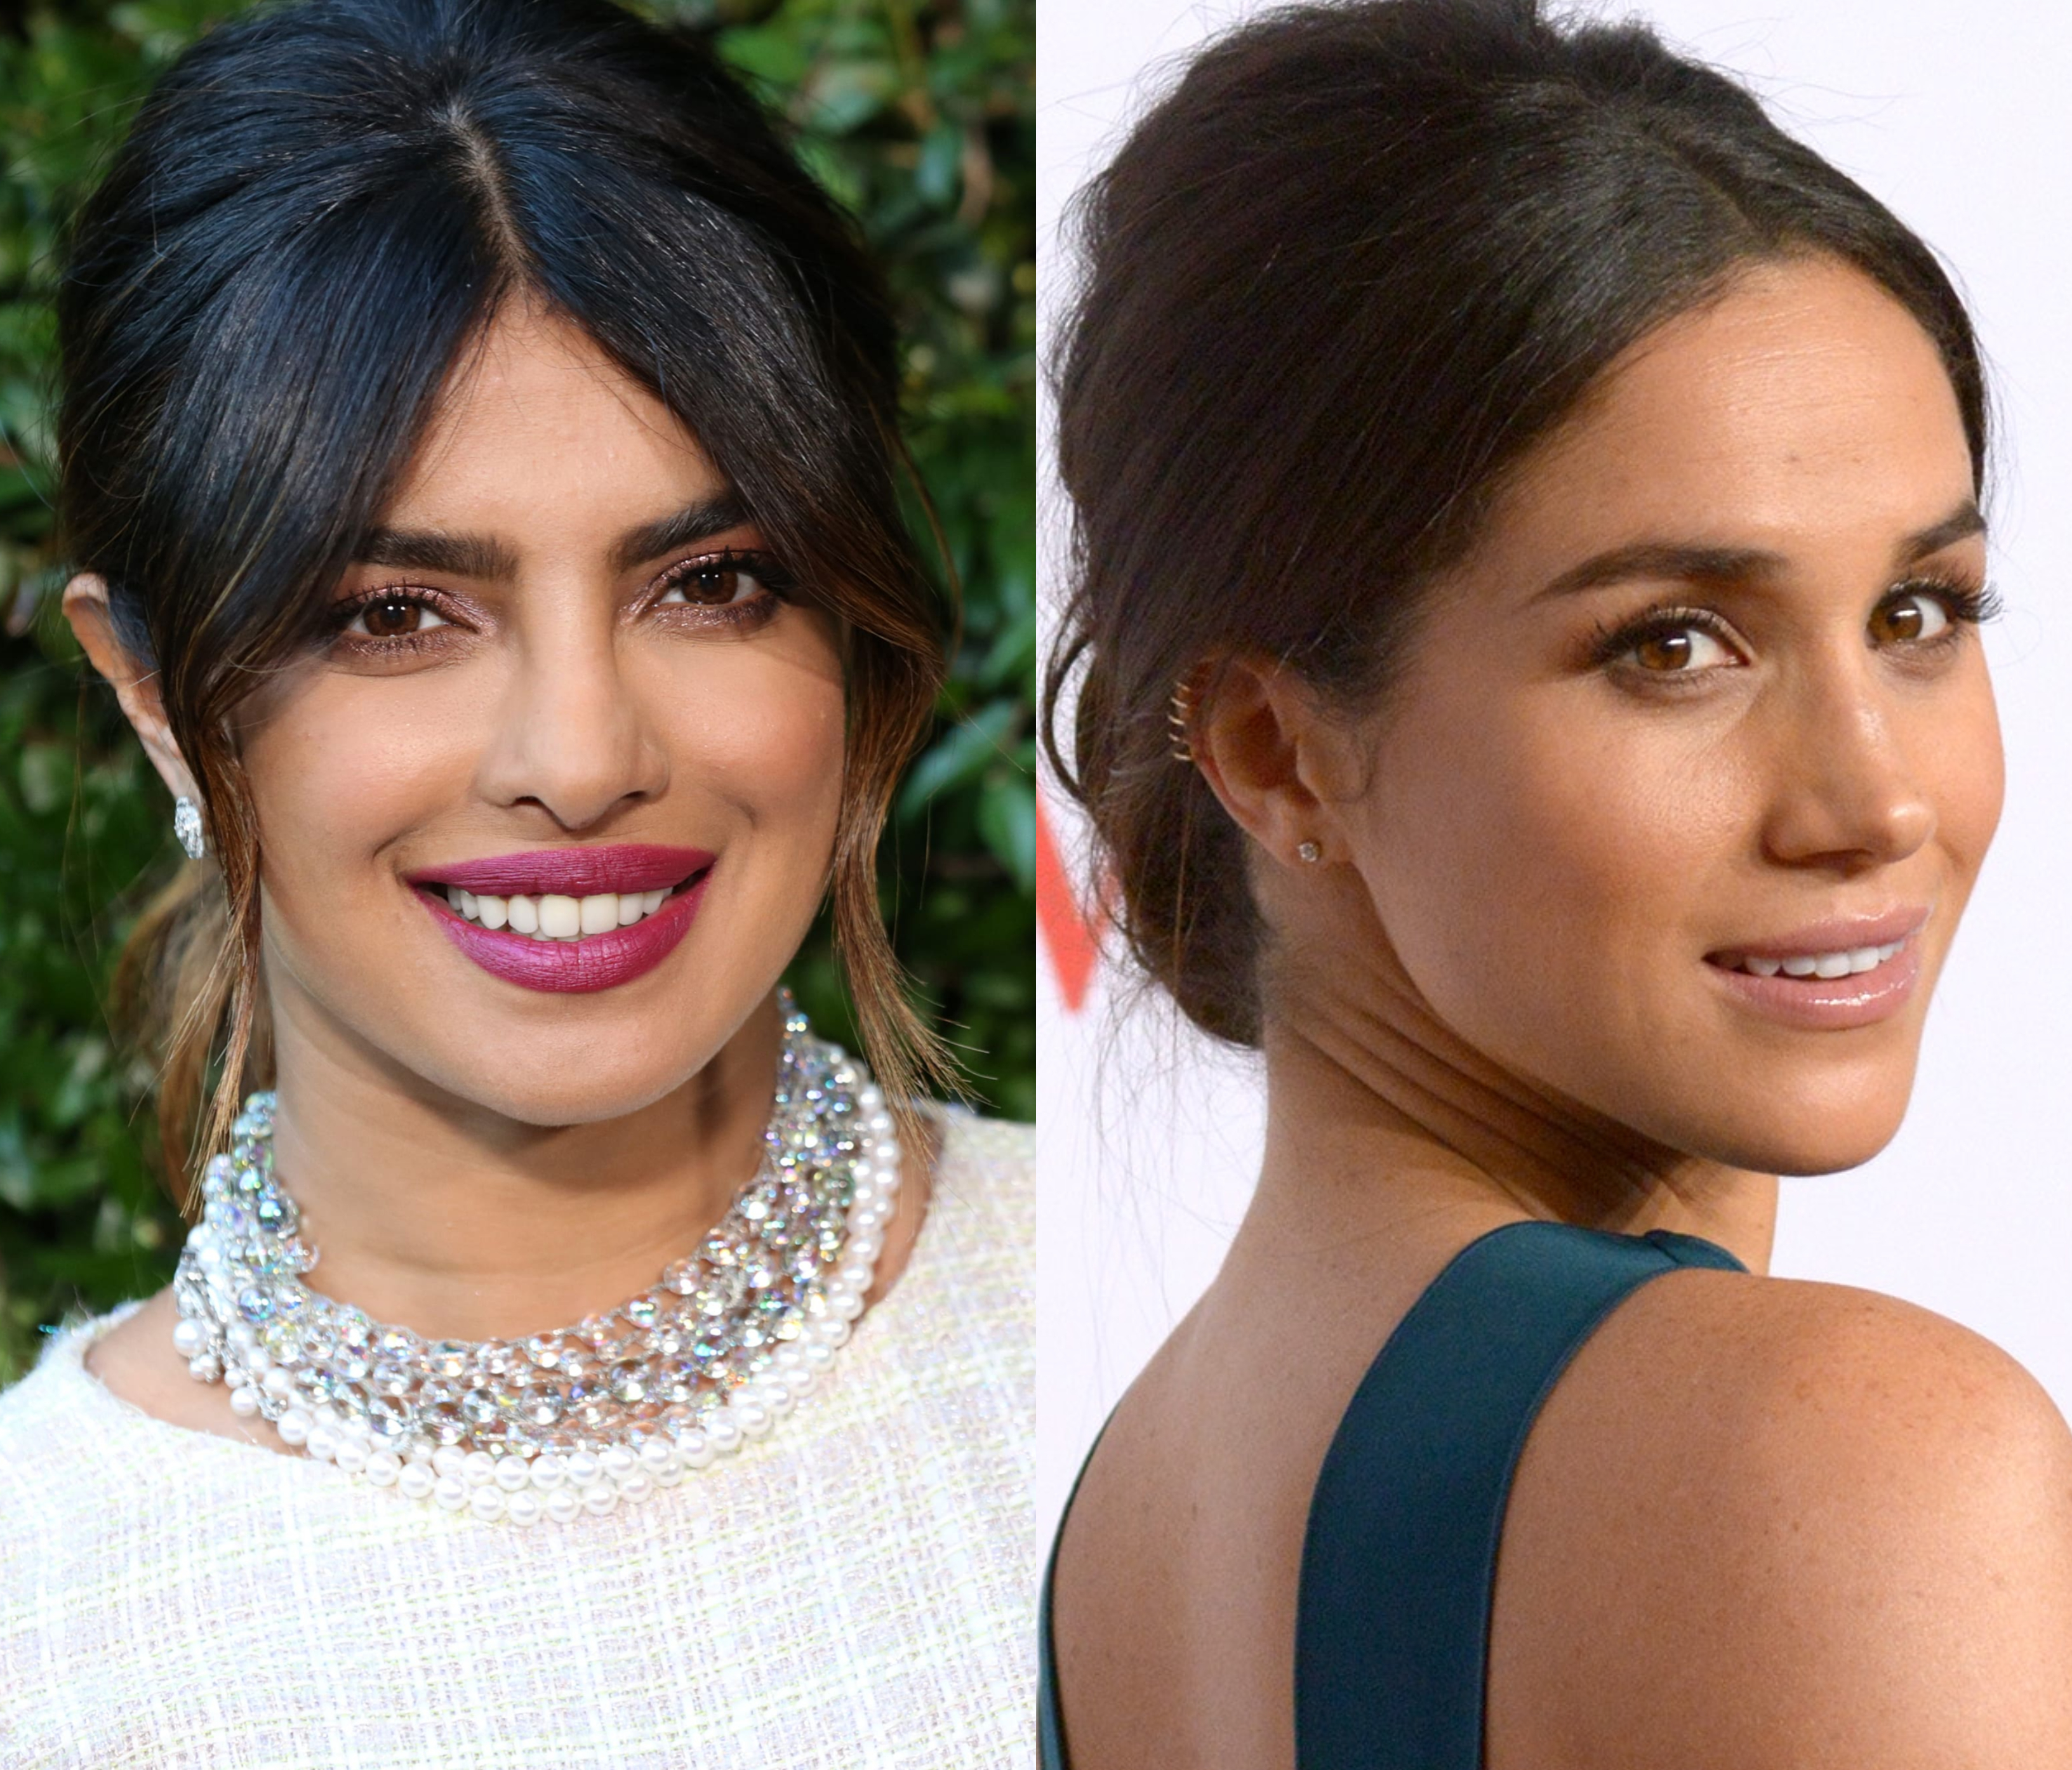 Is Priyanka Chopra And Meghan Markle's Friendship Over